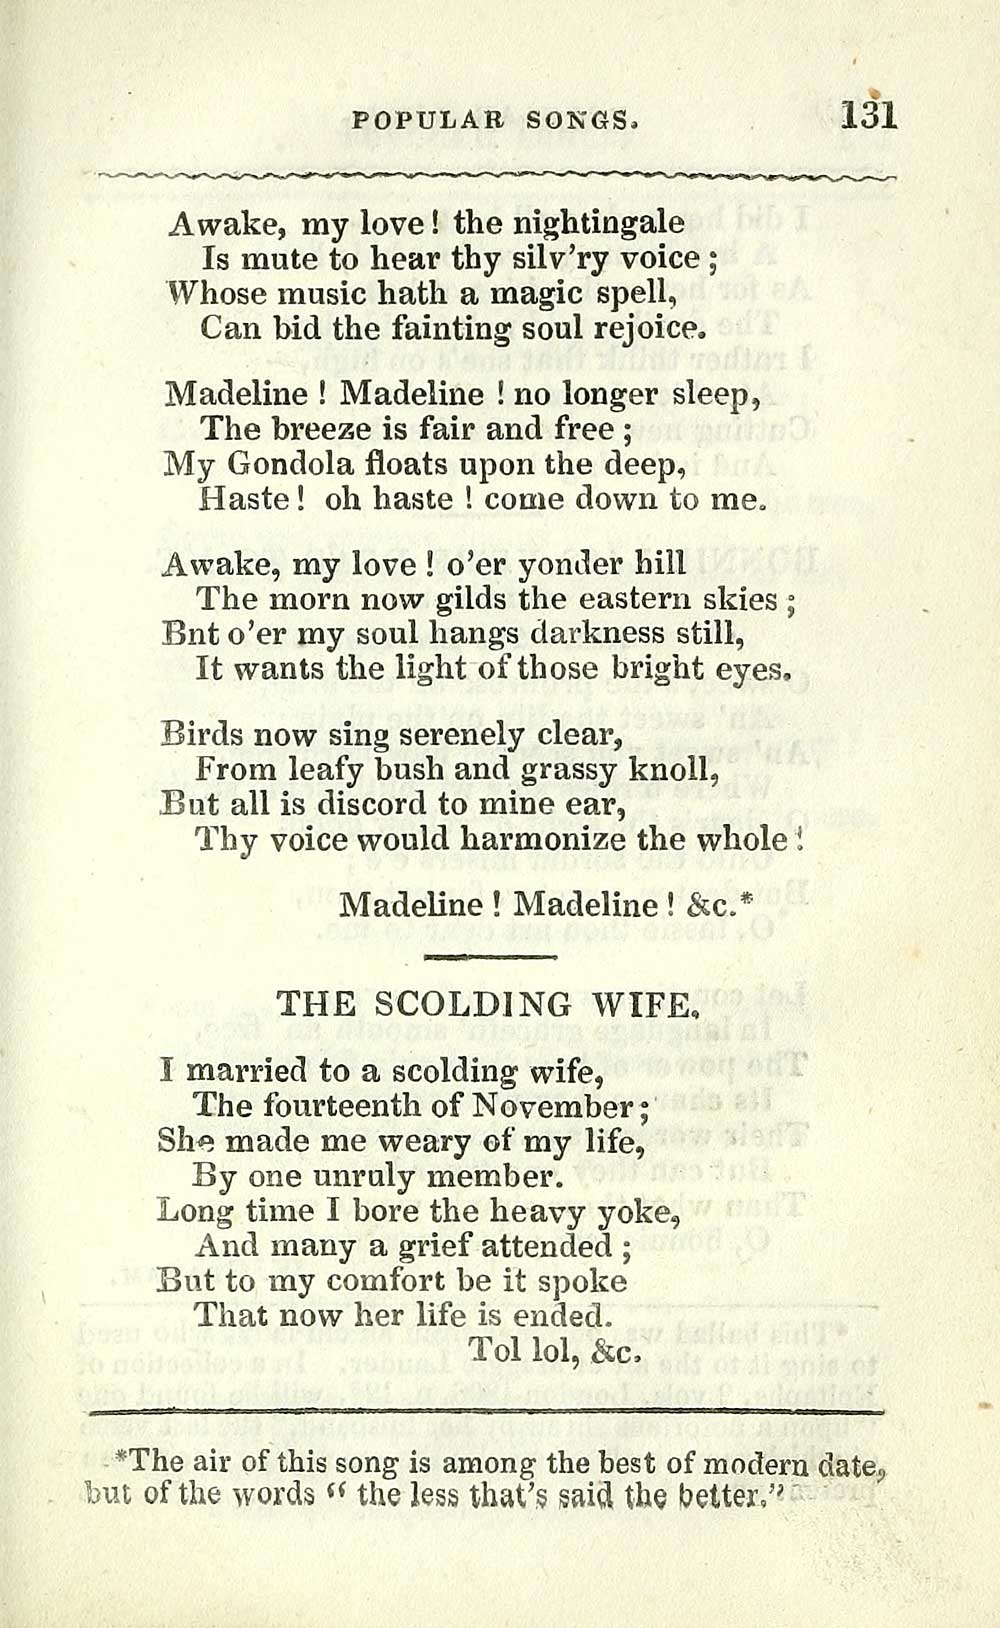 149) Page 129 - Scolding wife - Glen Collection of printed music